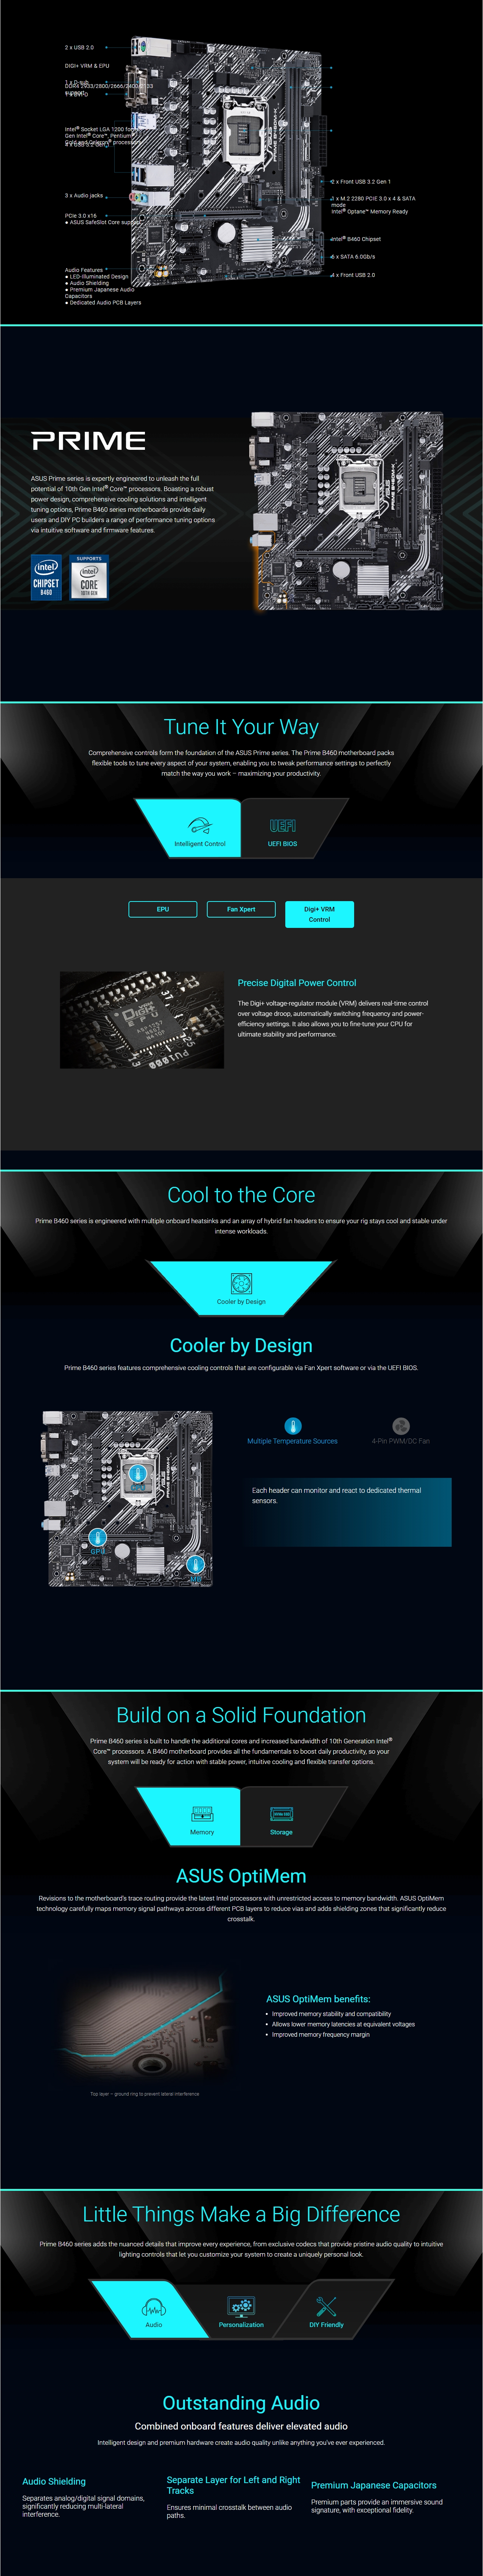 A large marketing image providing additional information about the product ASUS PRIME B460M-K LGA1200 mATX Desktop Motherboard - Additional alt info not provided